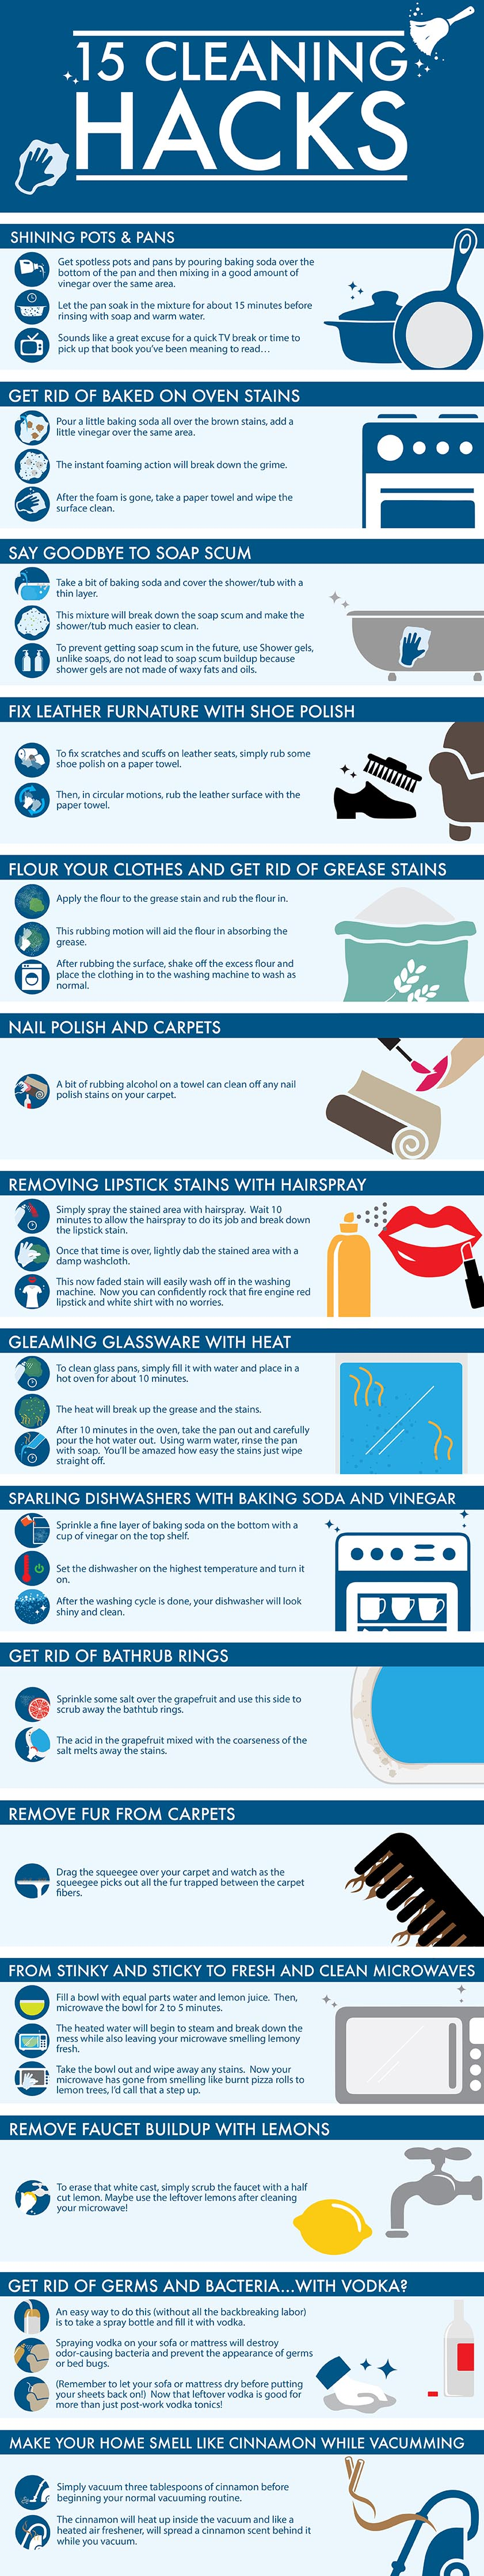 15 Genius Cleaning Hacks That Will Make Your Life Easier Infographic